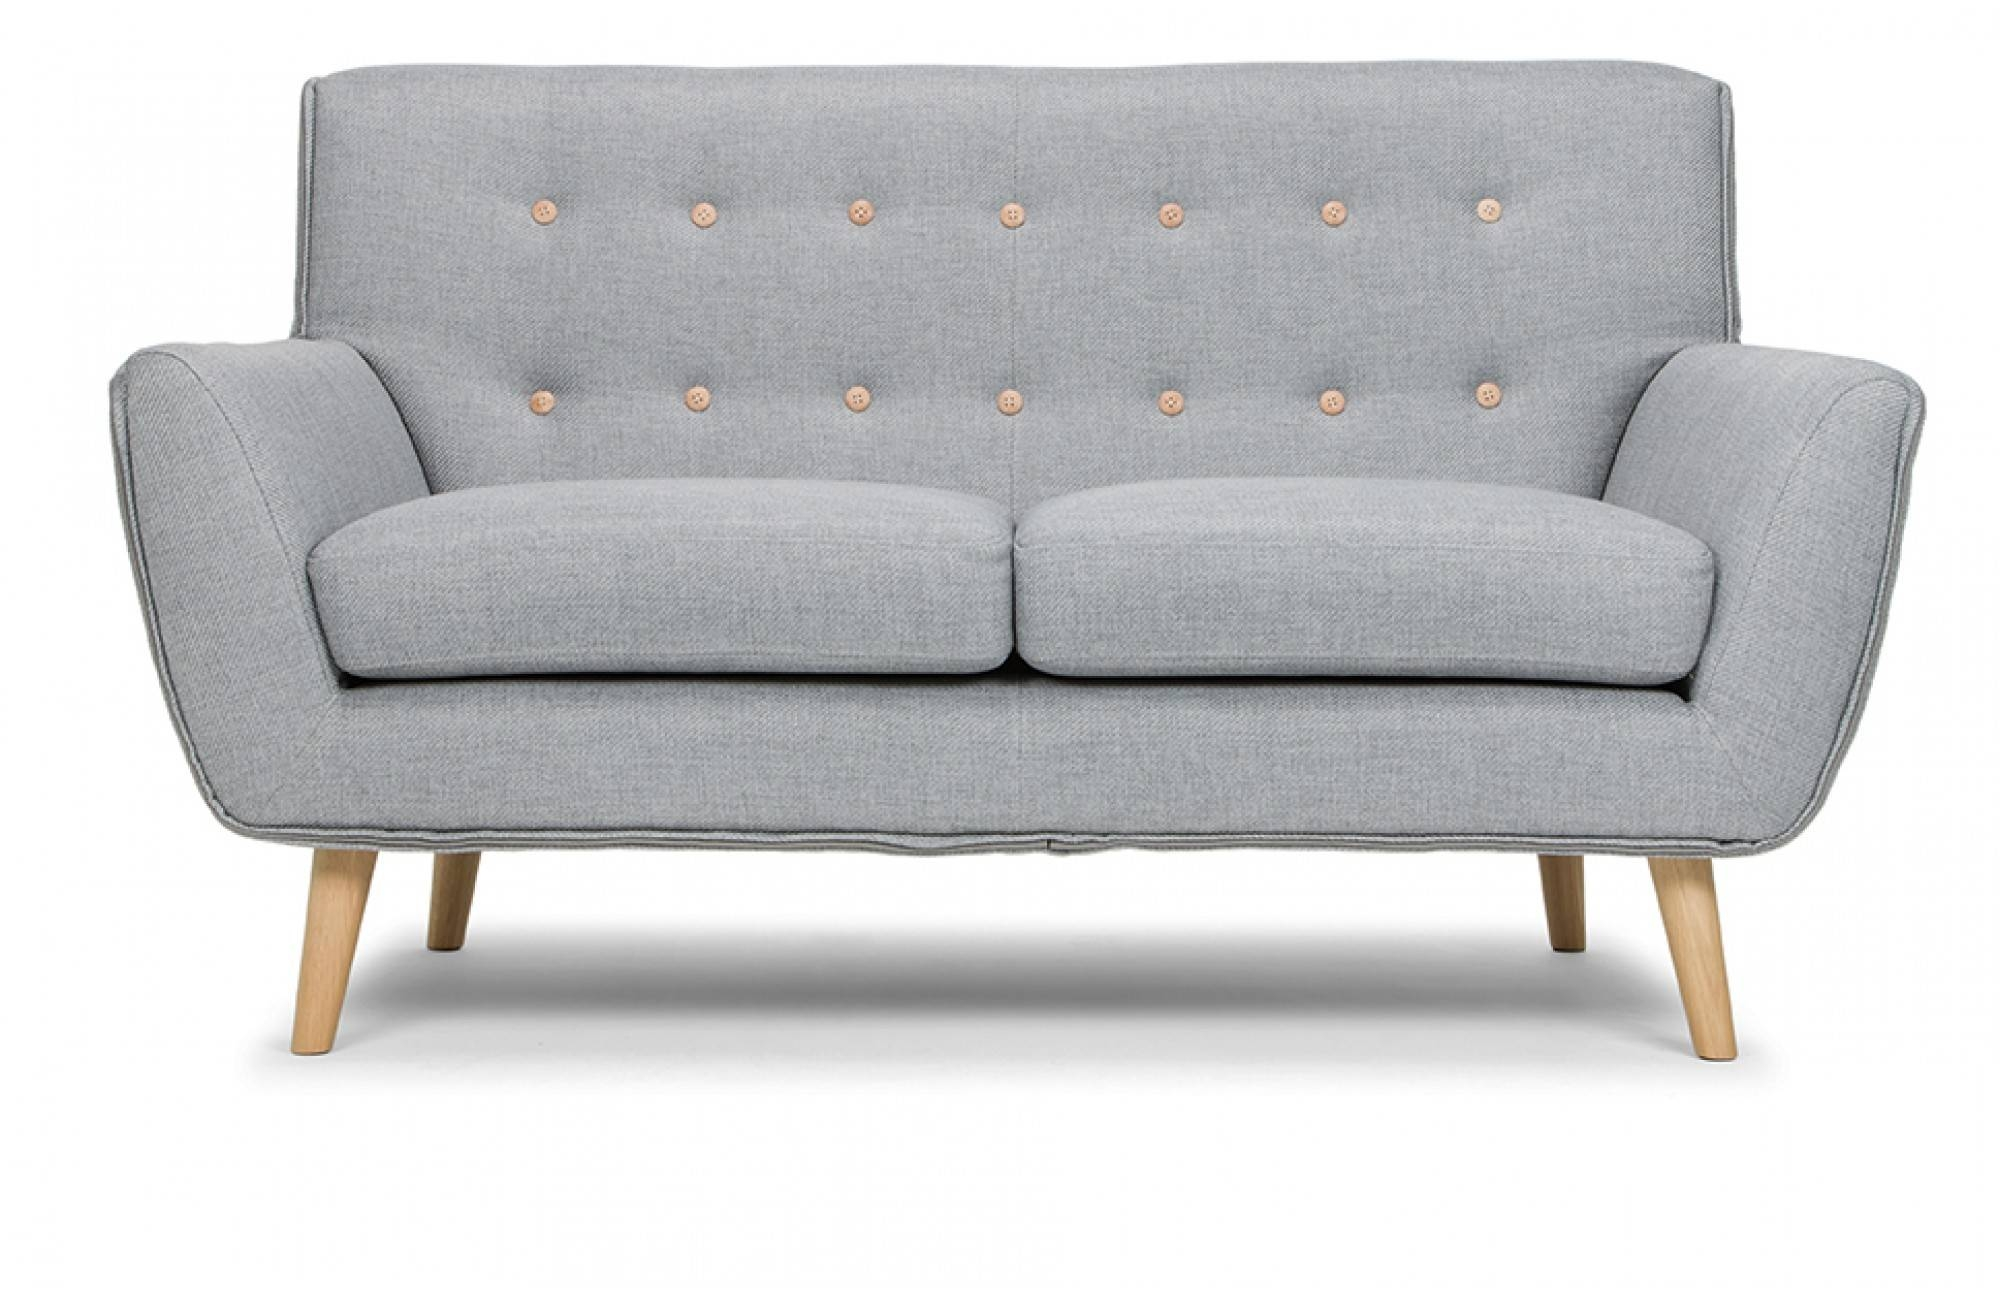 Richard 2-Seater Sofa In Stone Grey - Out And Out Original regarding Two Seater Sofas (Image 22 of 30)